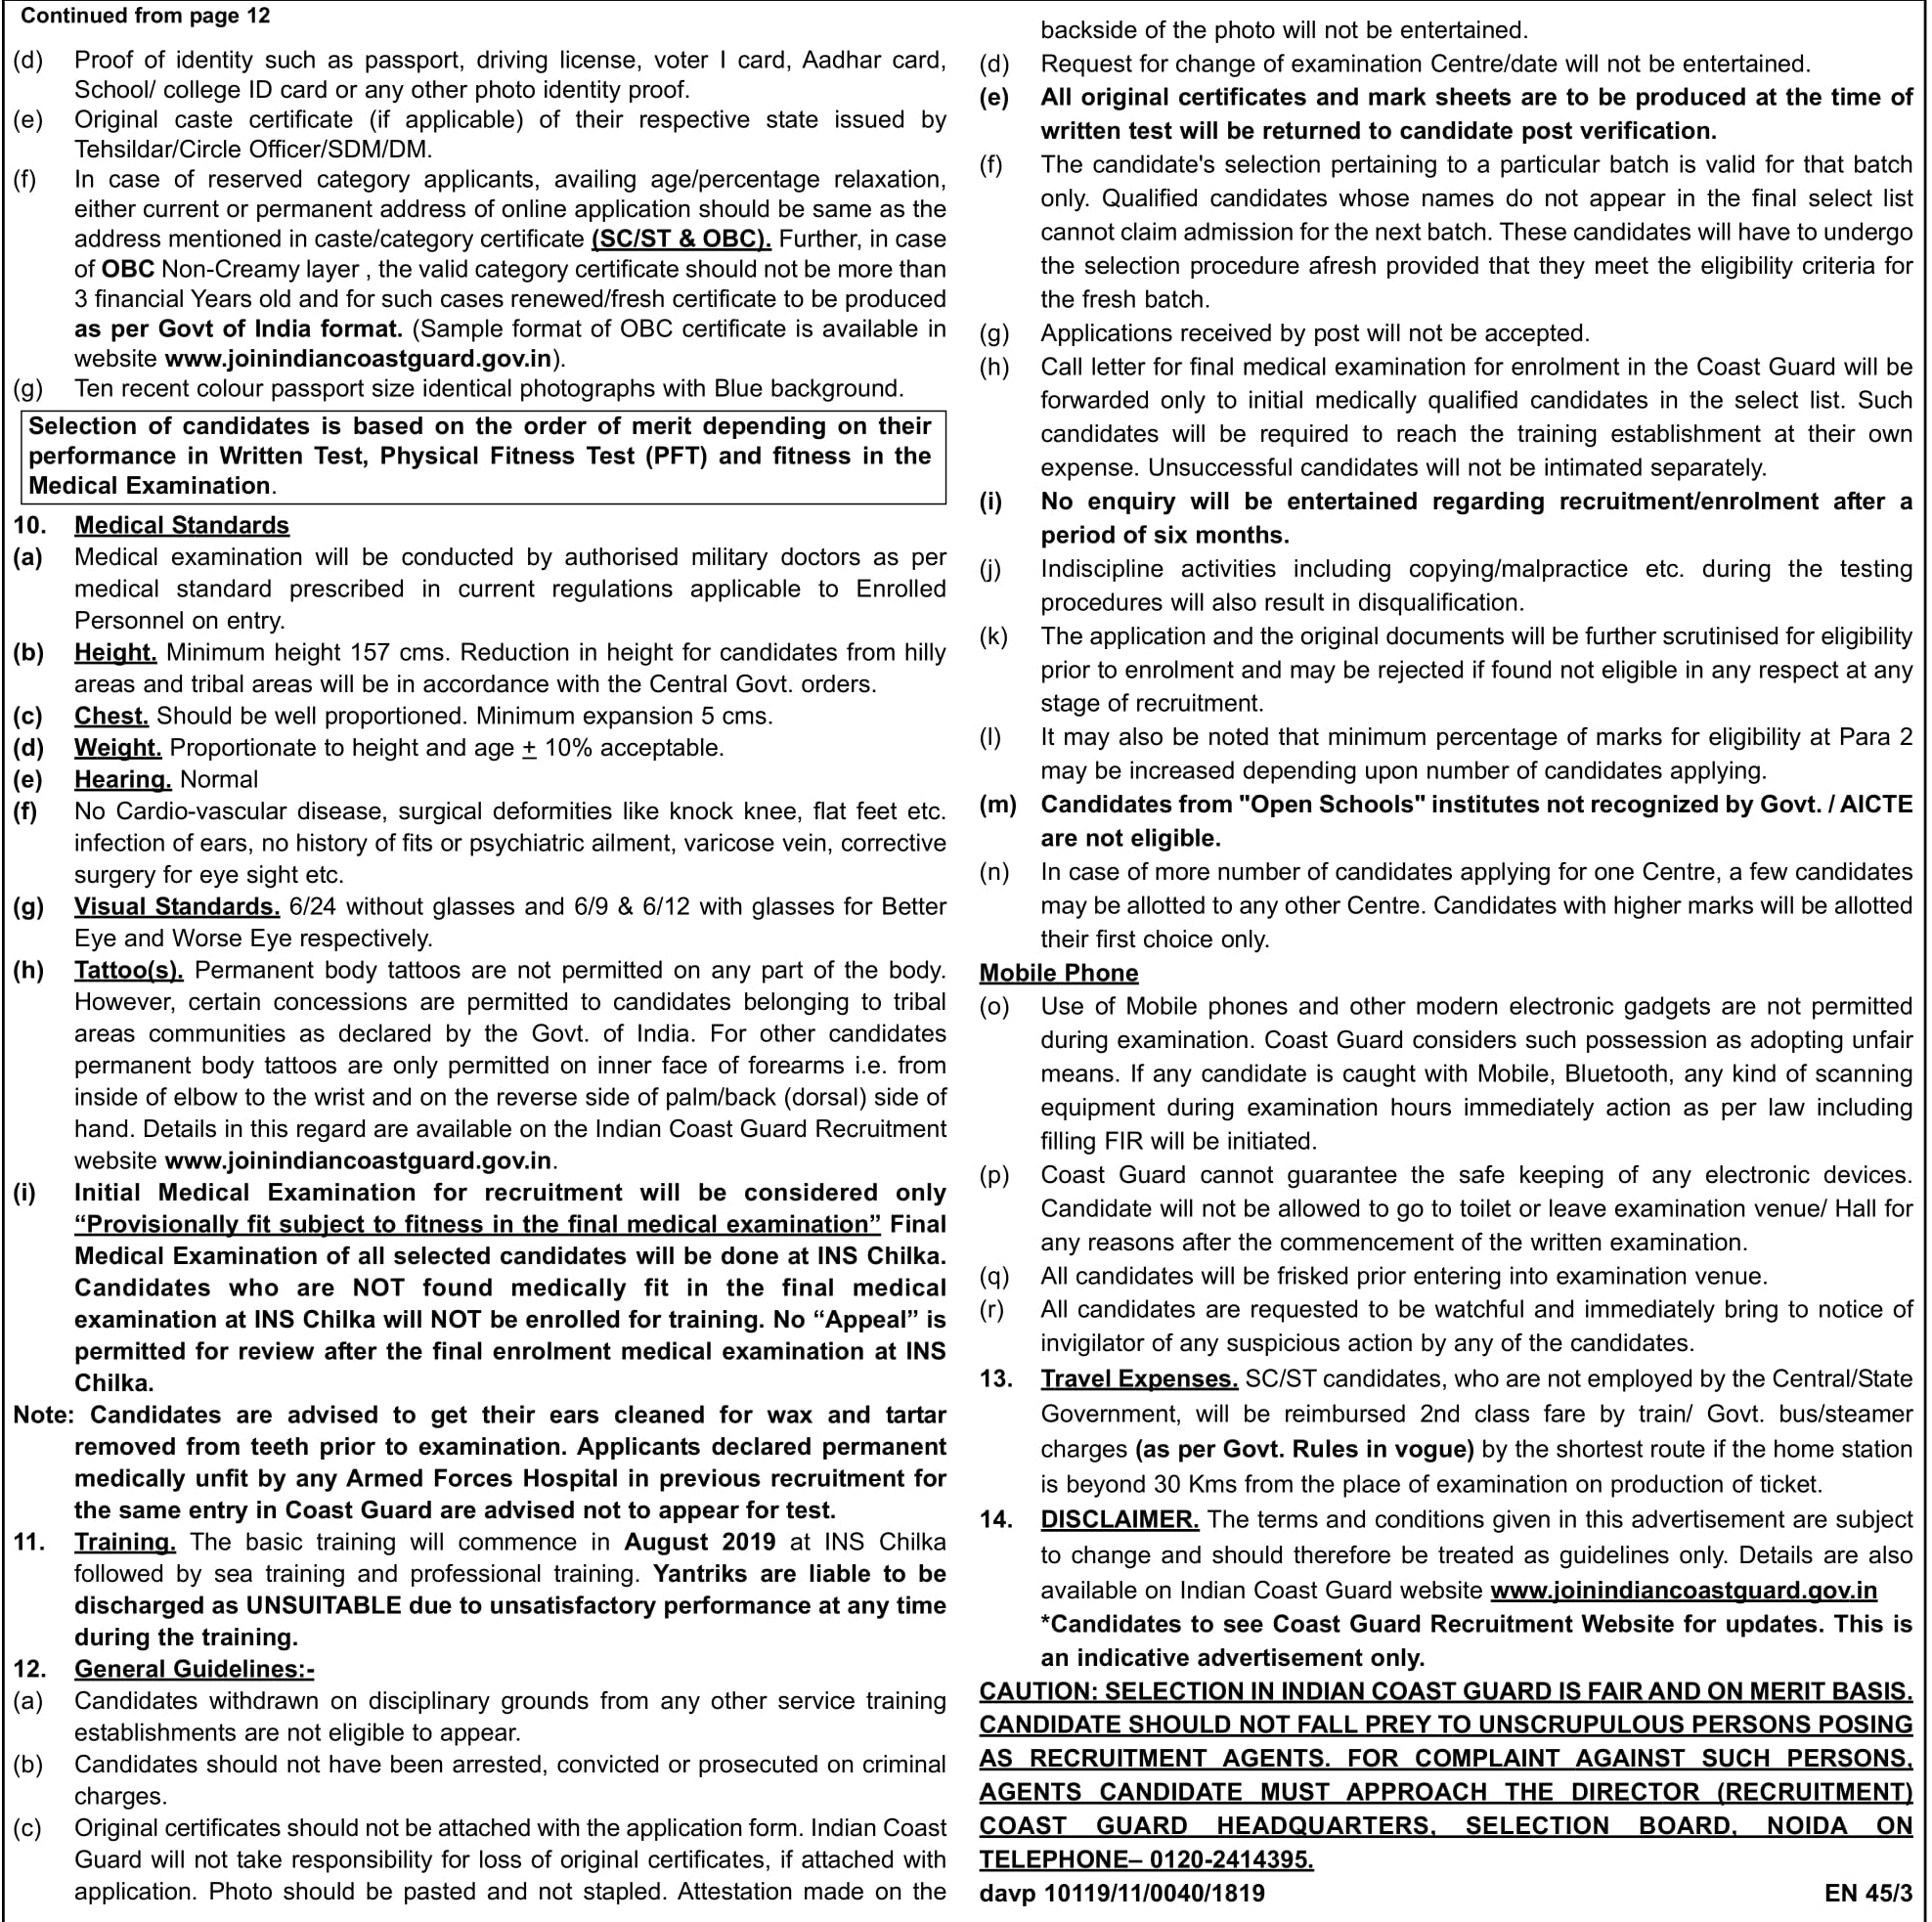 Indian Coastal Guard 2019 Jobs News